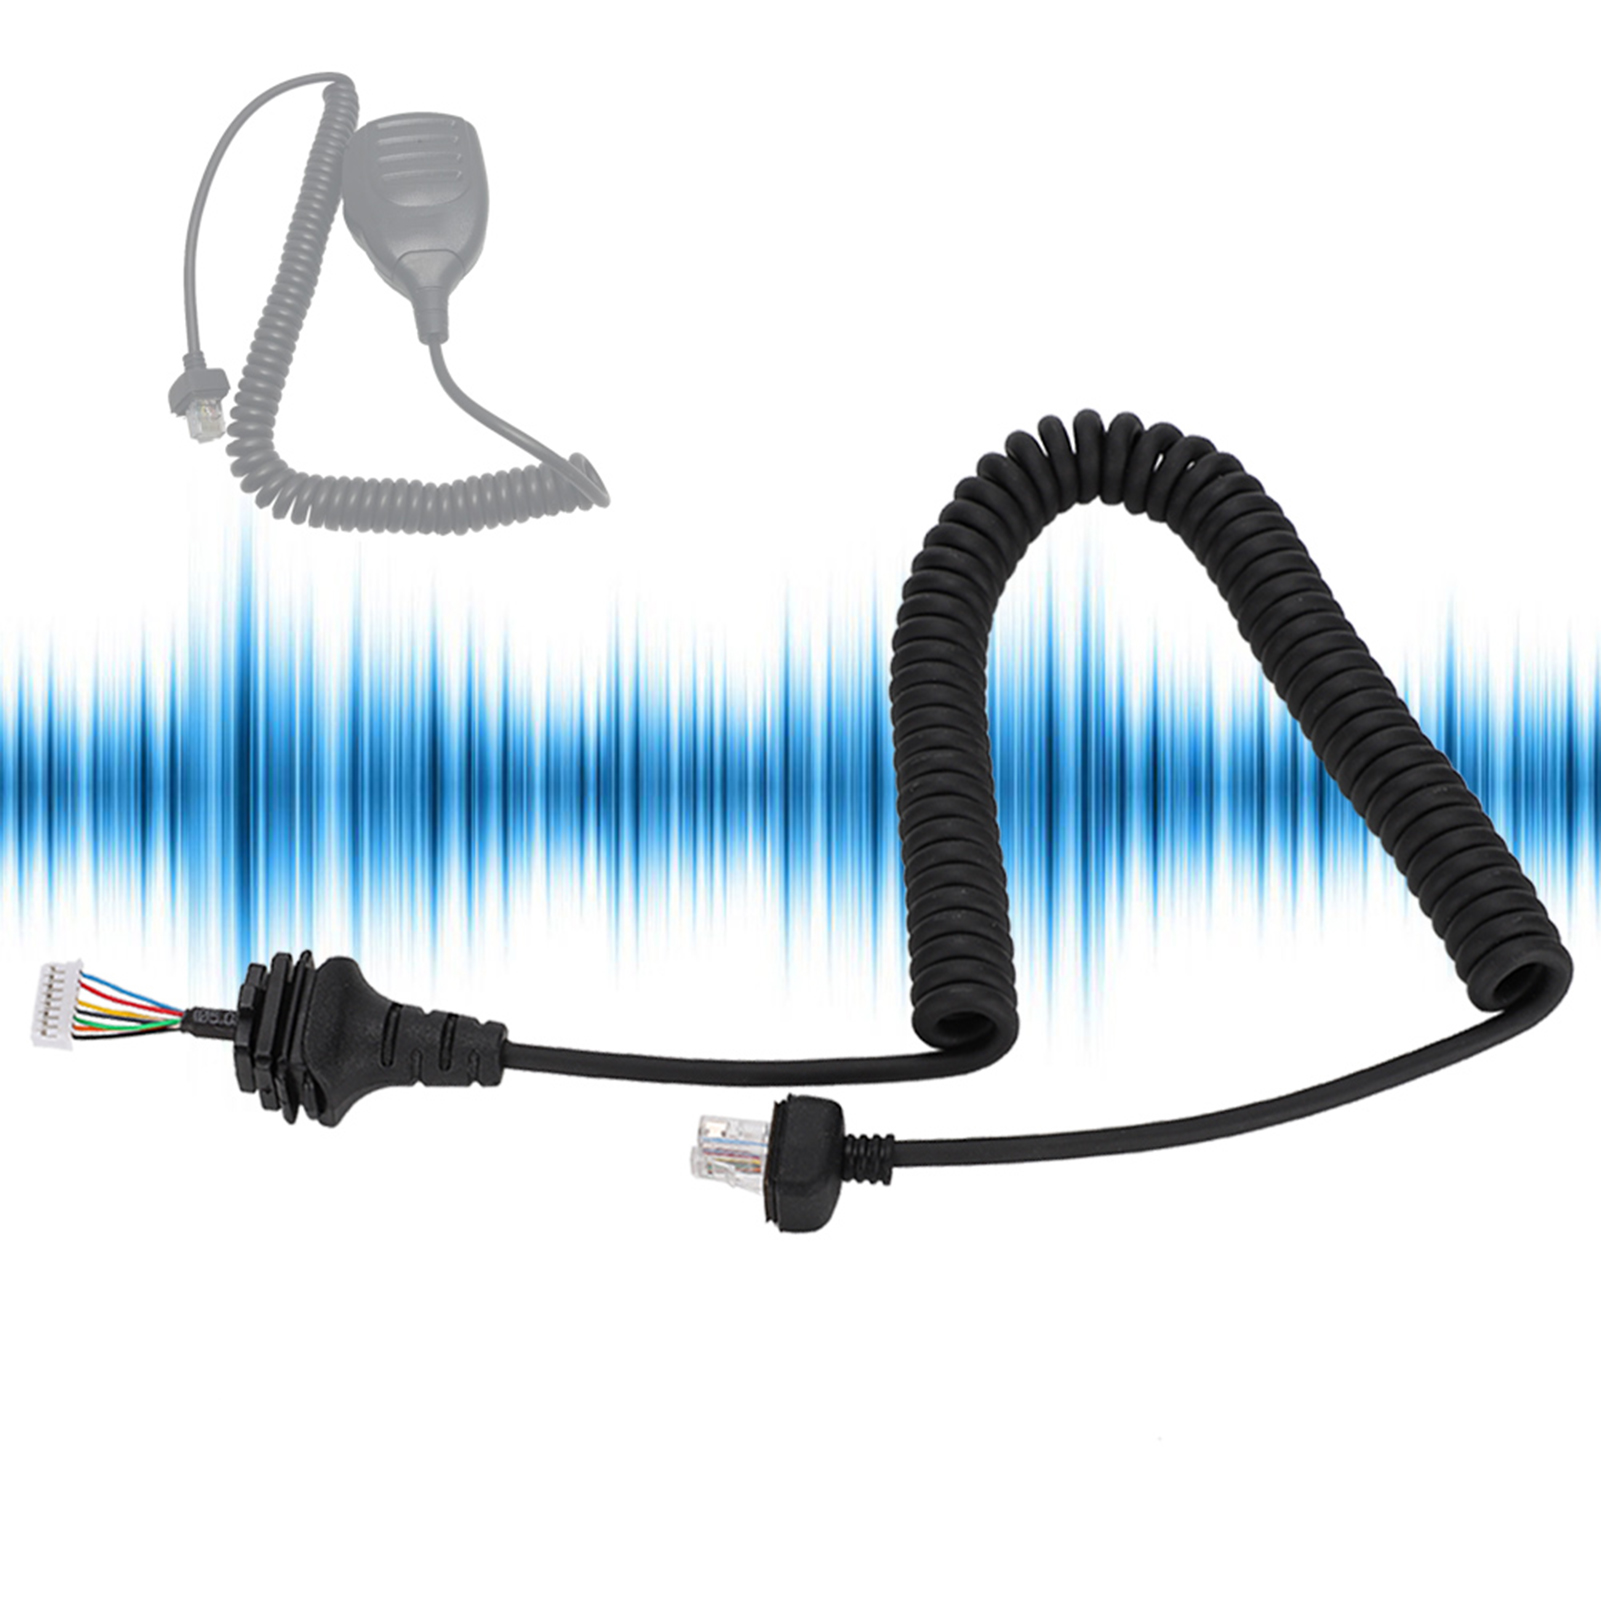 Microphone-Cable-Cord-8Pin-Compatible-w-Kenwood-TM-331A-TM-431A-TM-531A-TM-241A thumbnail 34